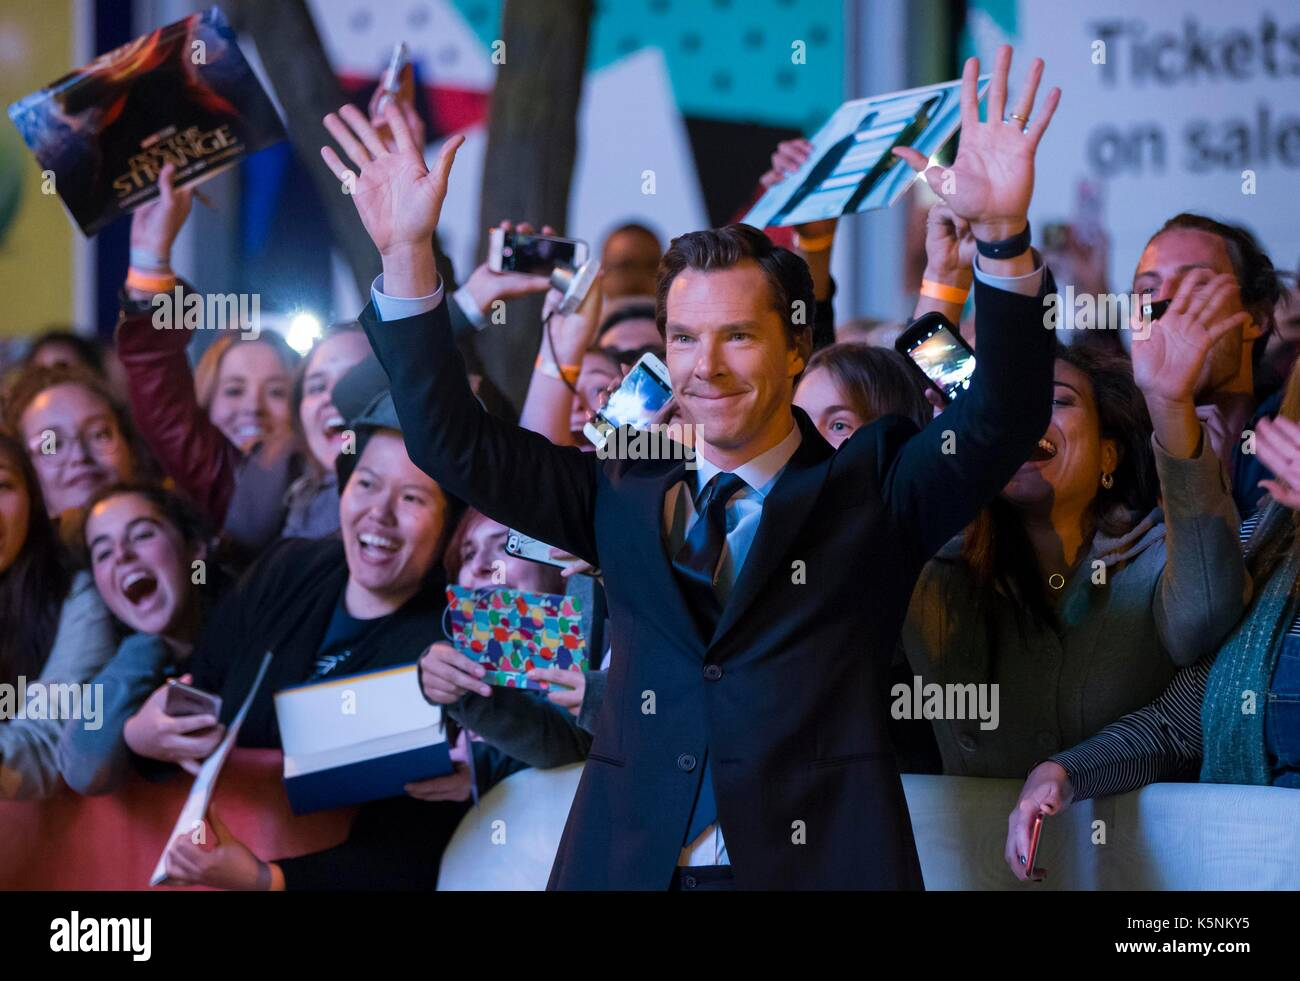 Toronto, Canada. 9th Sep, 2017. Actor Benedict Cumberbatch (front) poses for photos with fans as he attends the Stock Photo